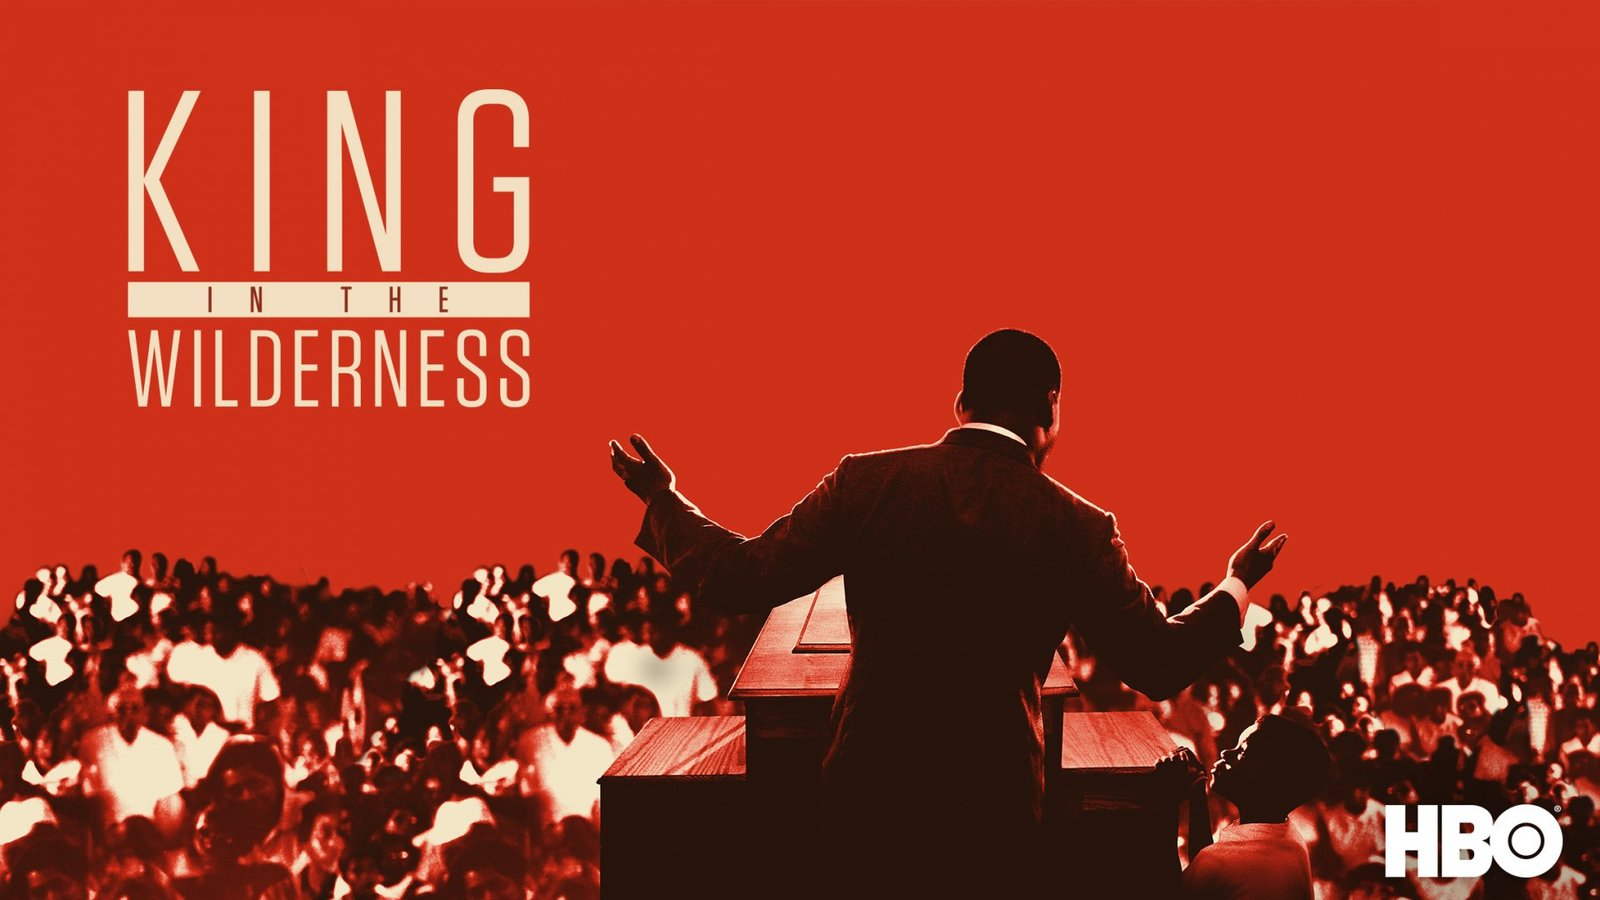 King in the Wilderness - The Final Years of Dr. Martin Luther King, Jr.